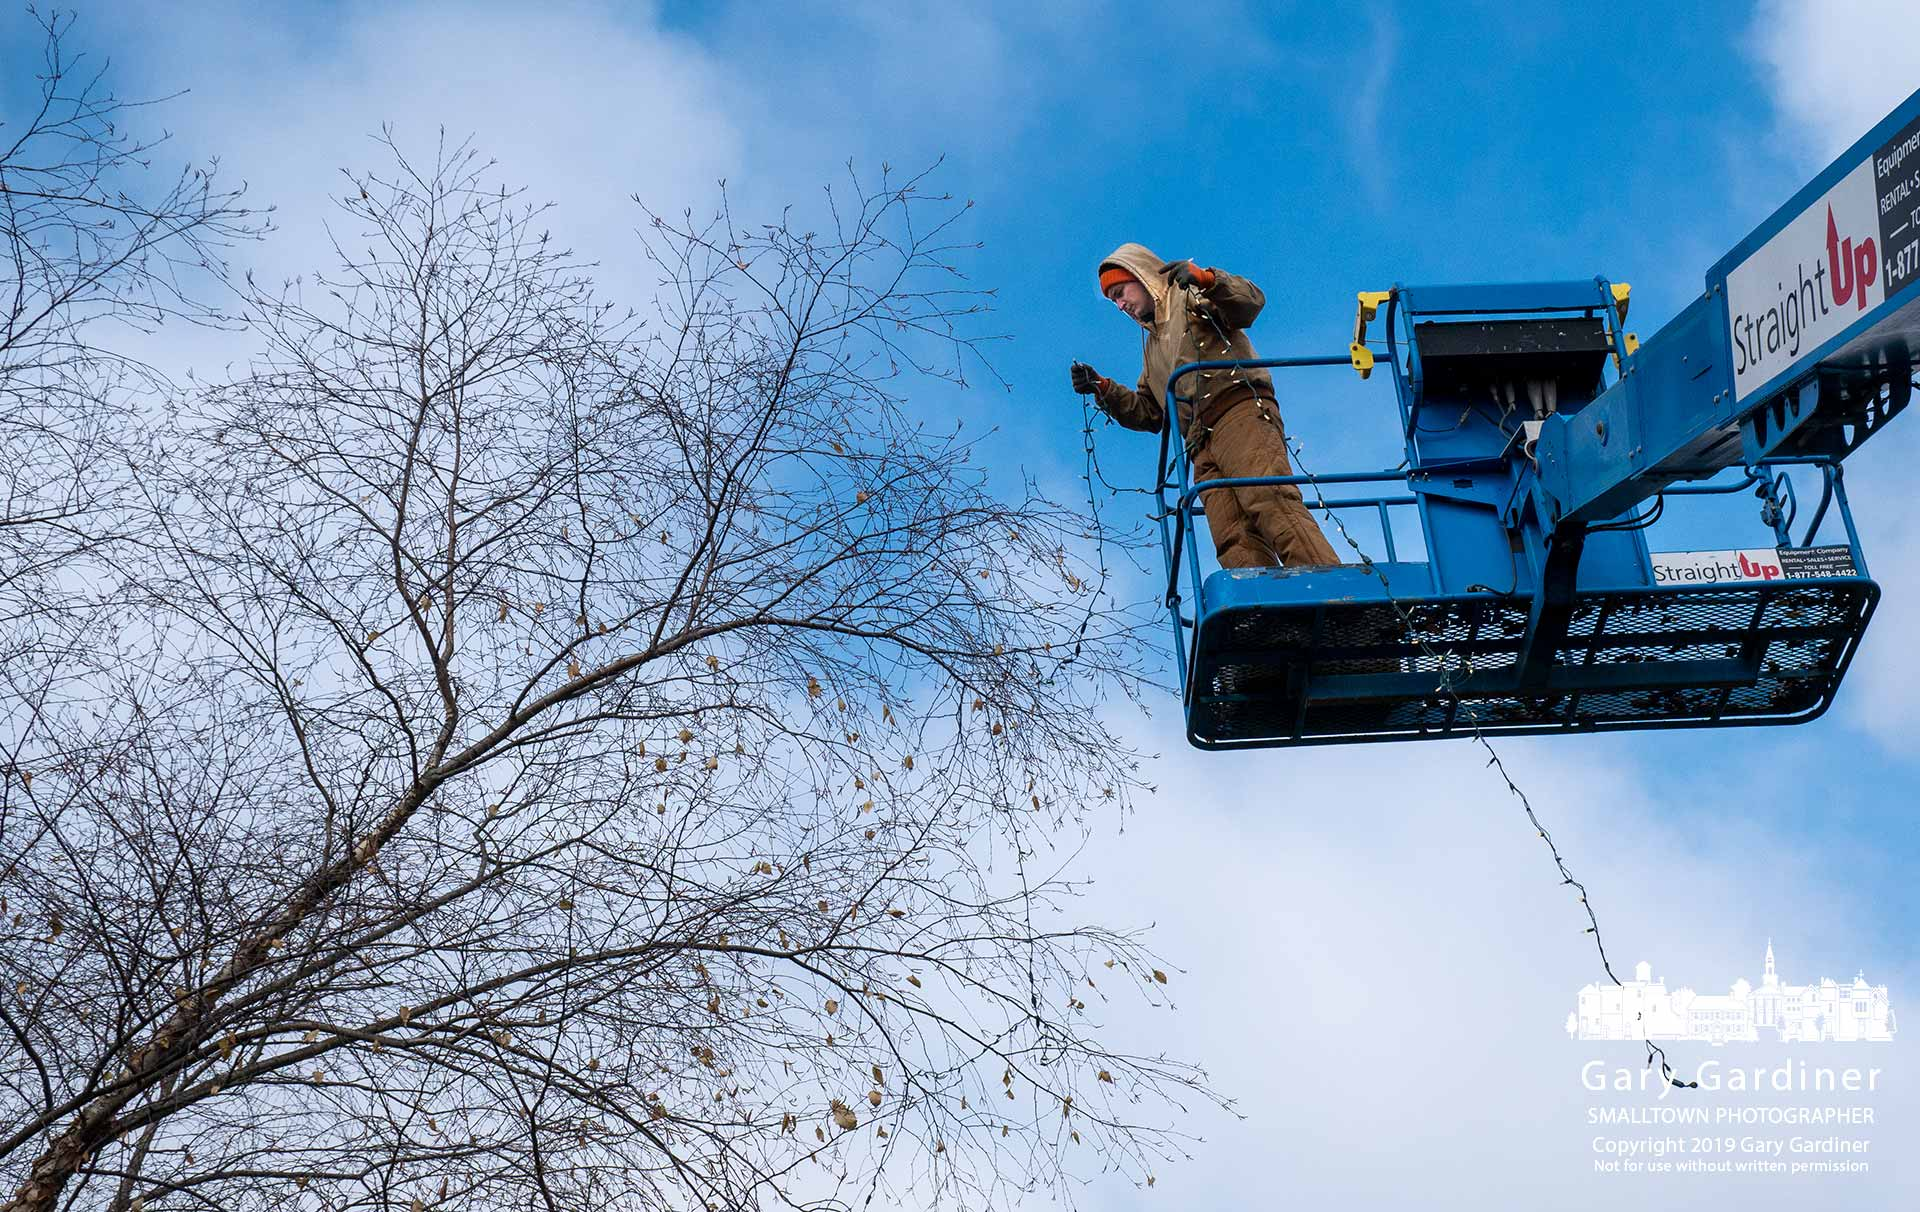 A Westerville Parks worker lays strands of lights in the trees at Heritage Park as the department prepares the grounds for the holiday season. My Final Photo for Nov. 15, 2019.